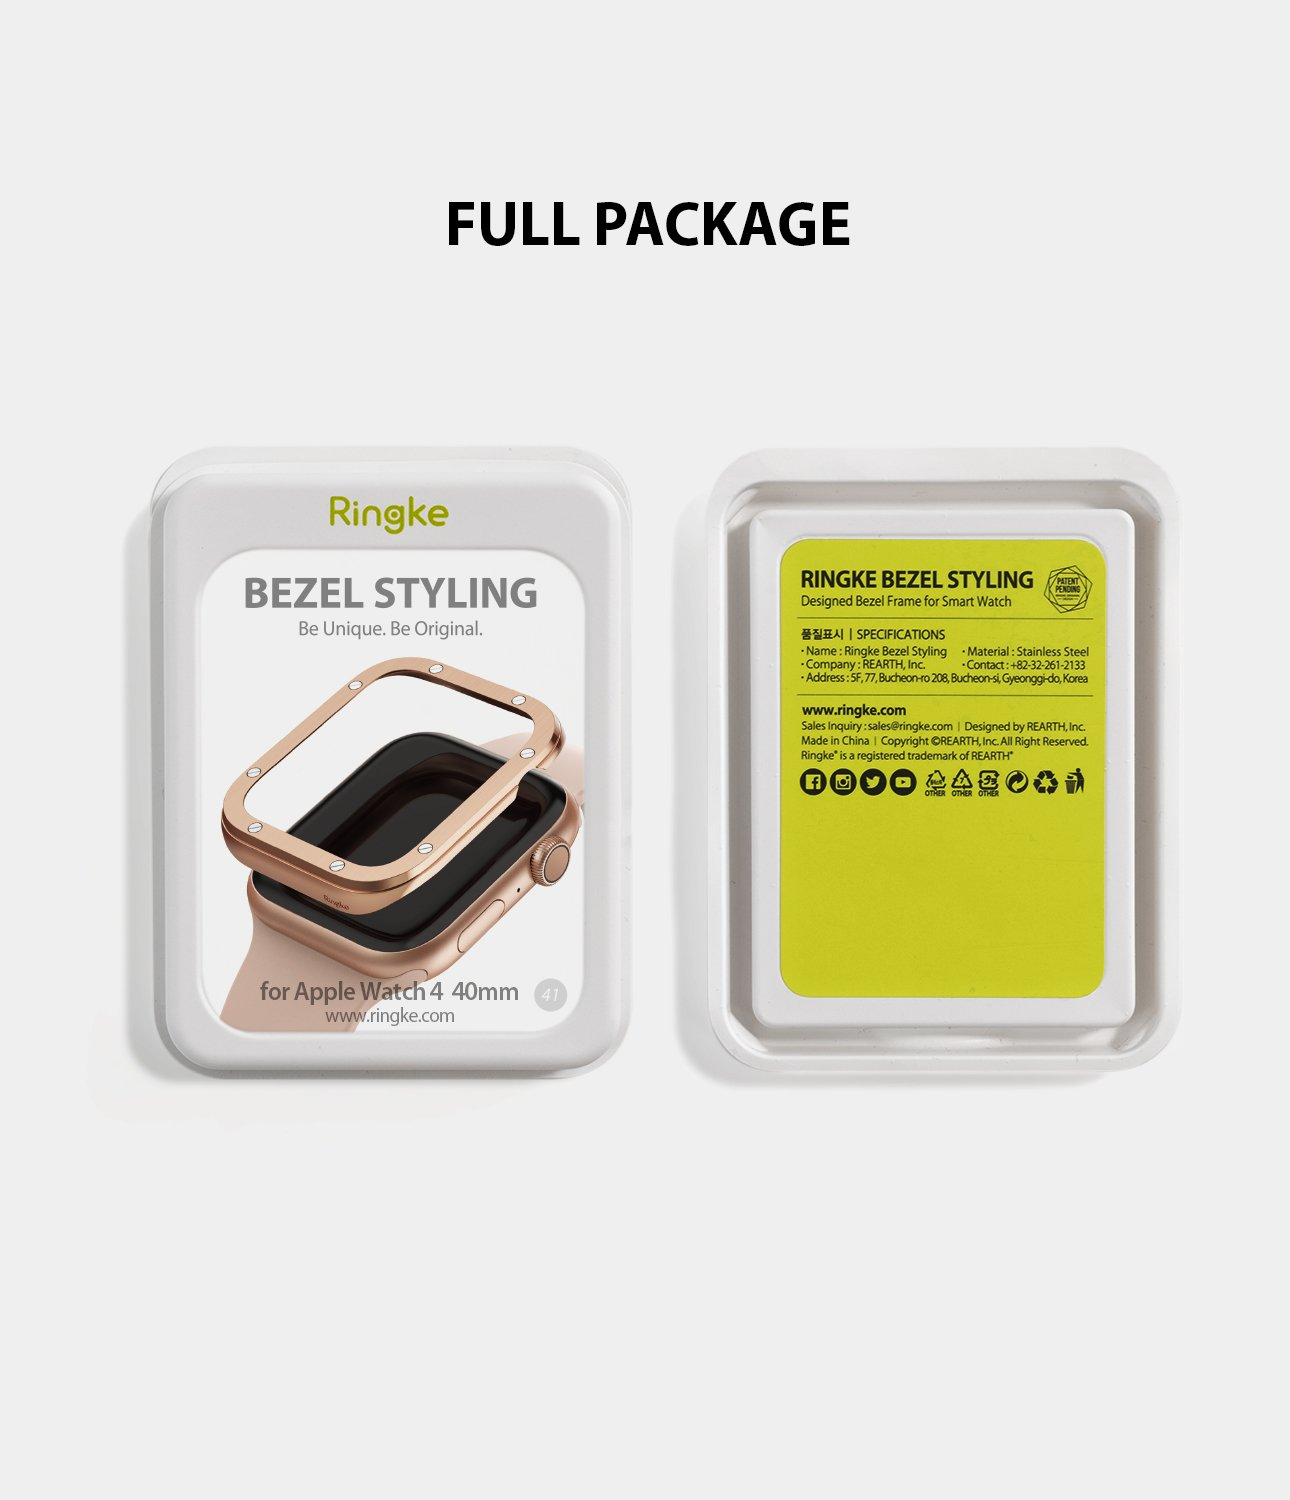 ringke bezel styling 40-41 stainless steel on apple watch series 5 / 4 40mm full package